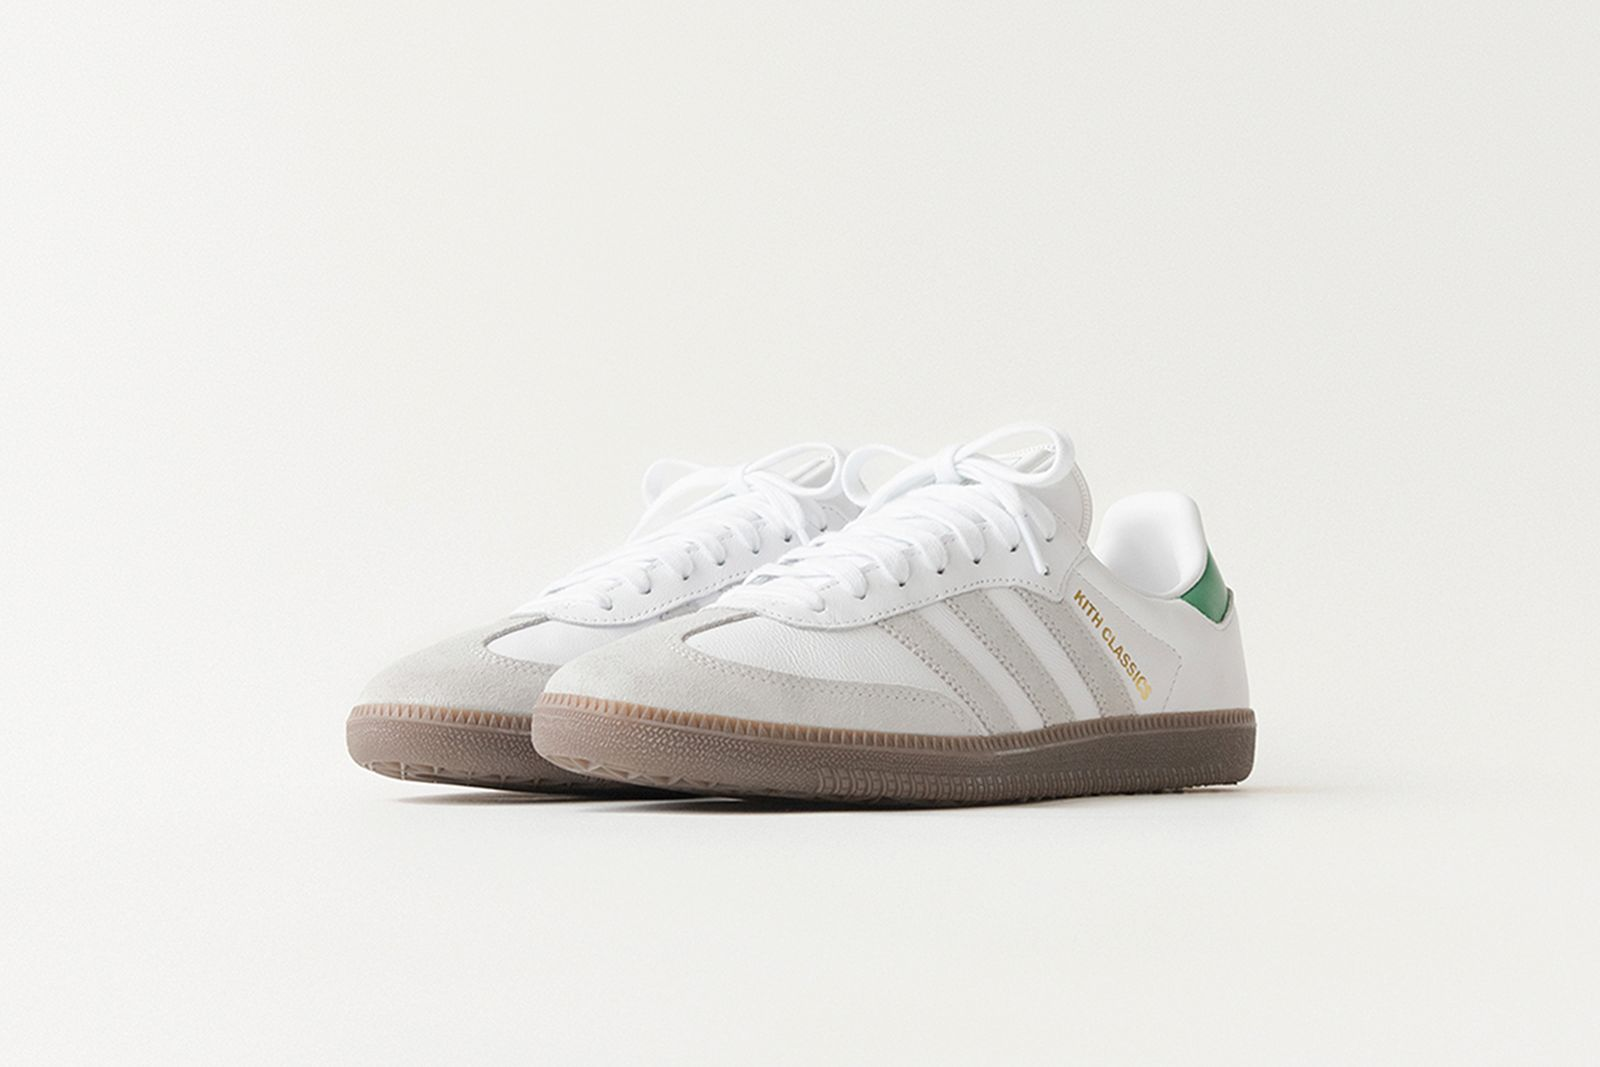 kith-adidas-summer-2021-release-info-15